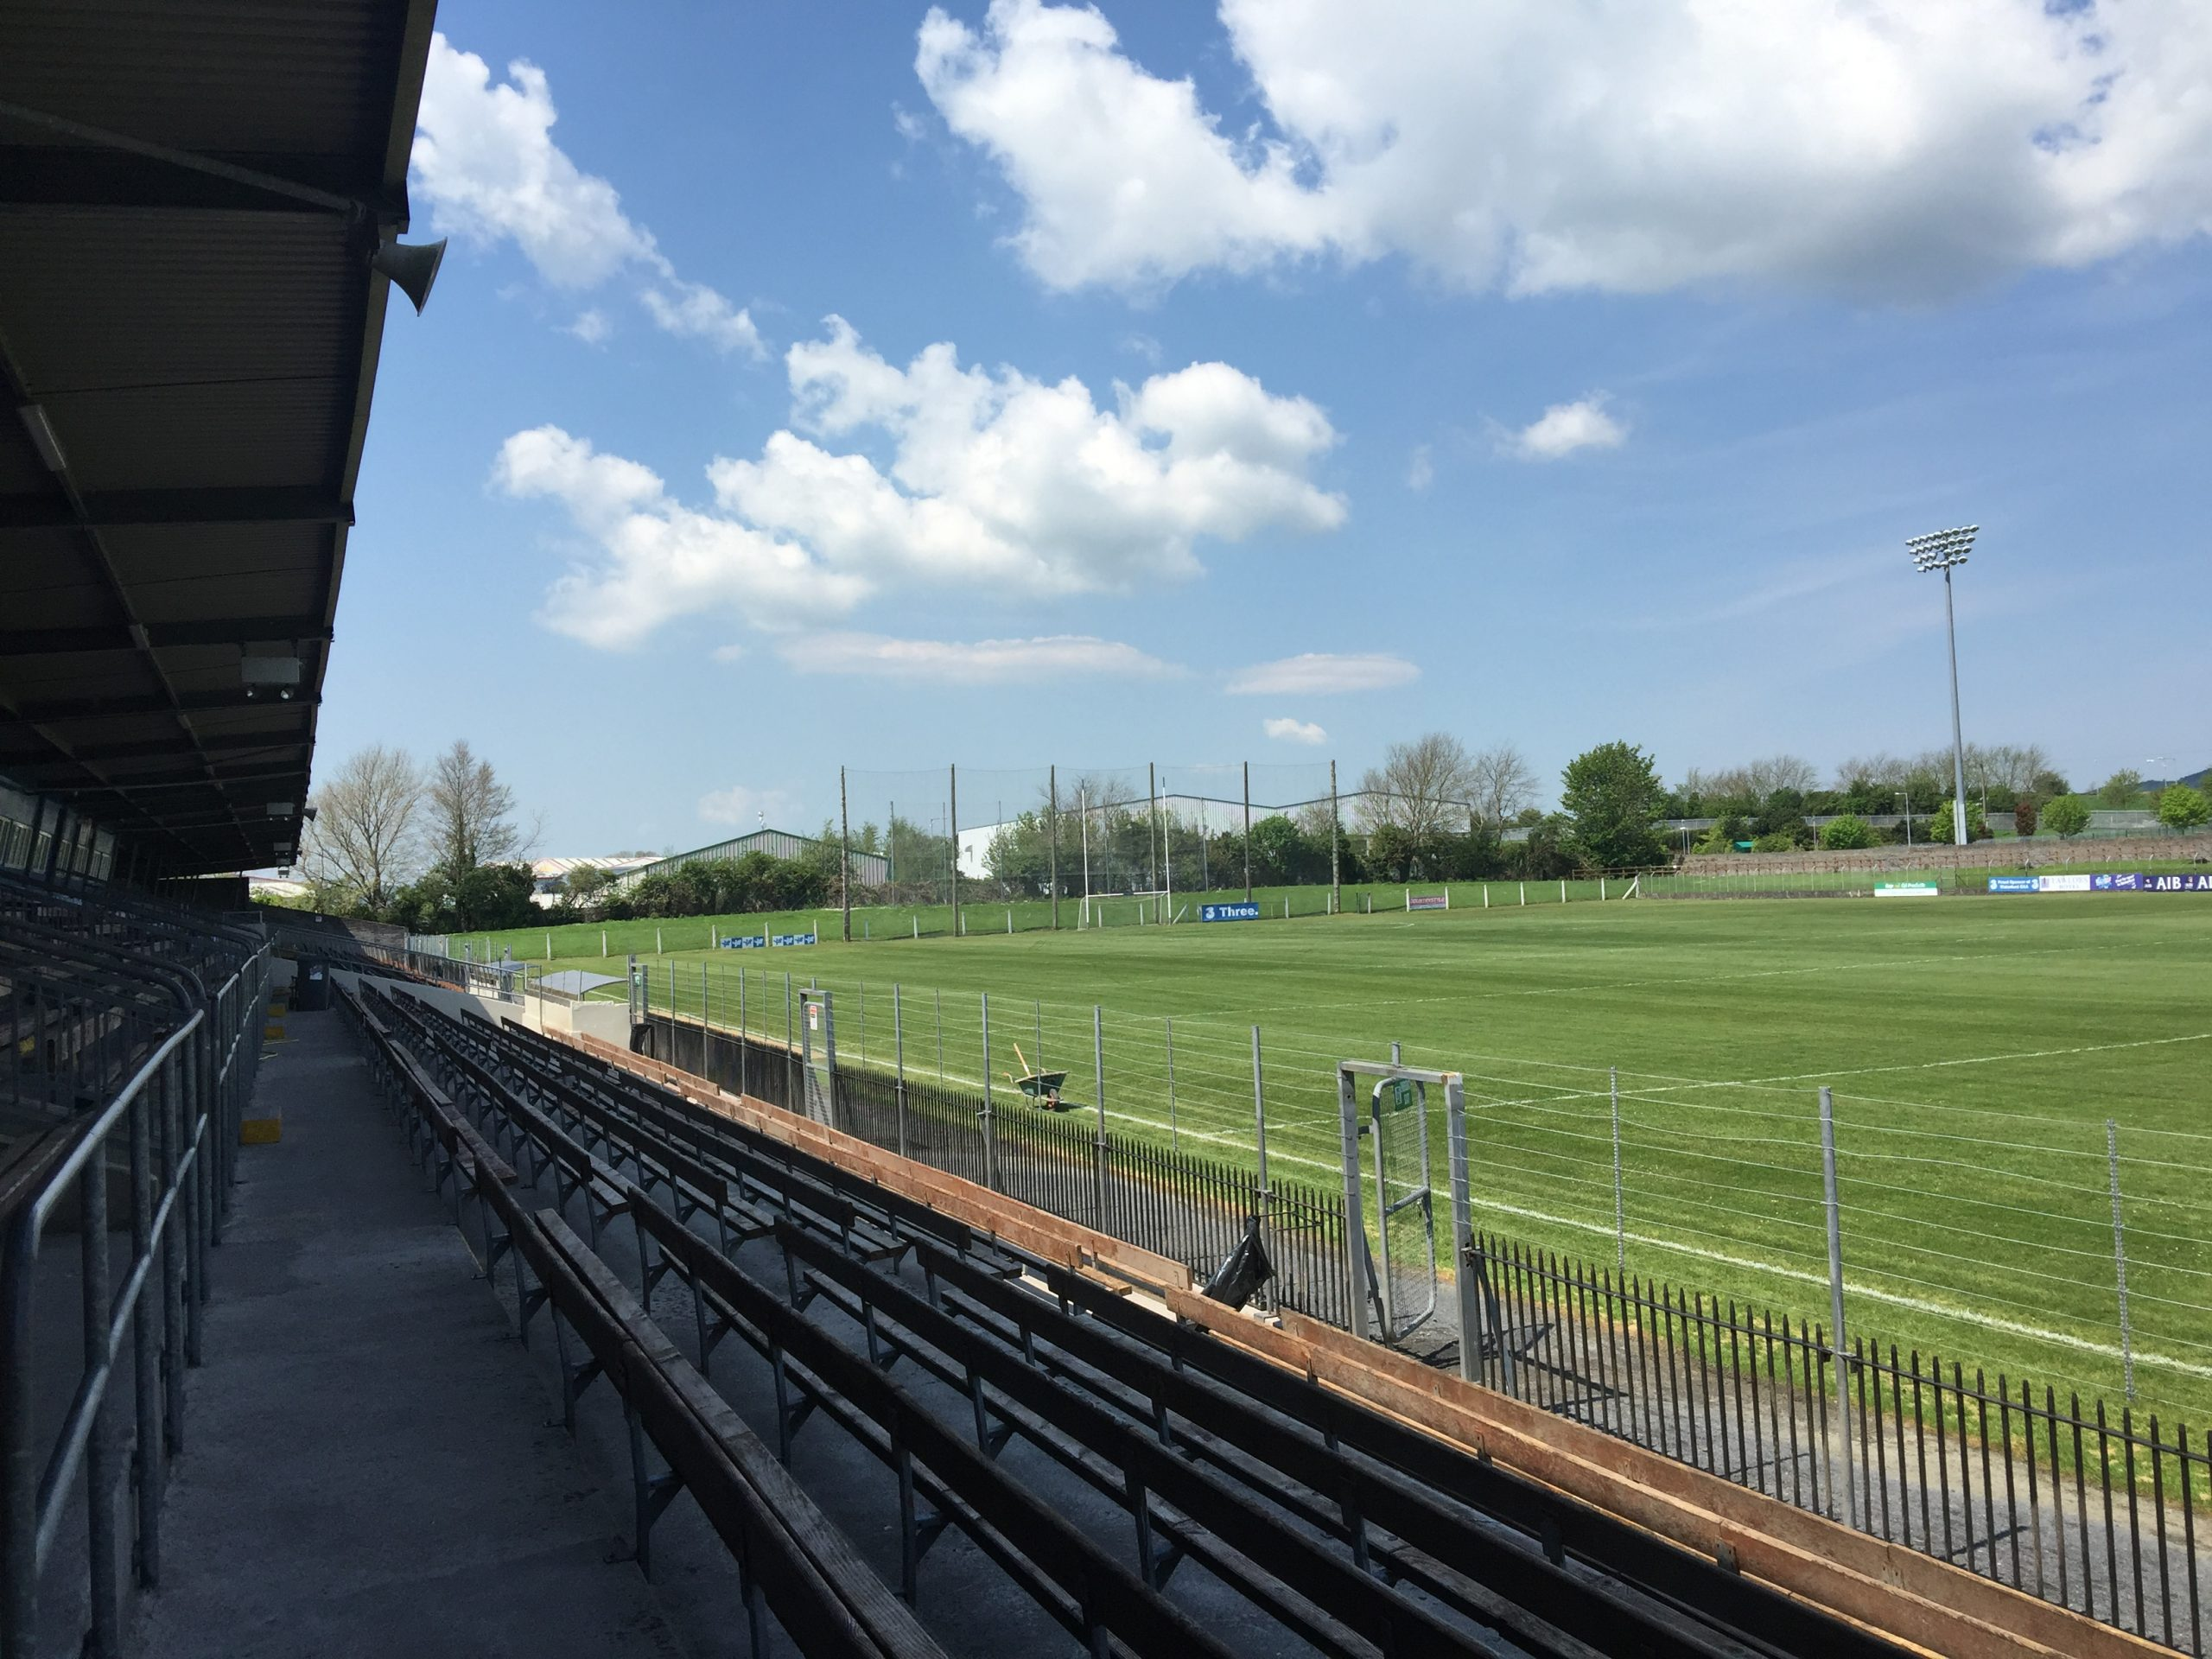 The Nire and Kilrossanty to battle it out for the Conway Cup in much anticipated decider this evening